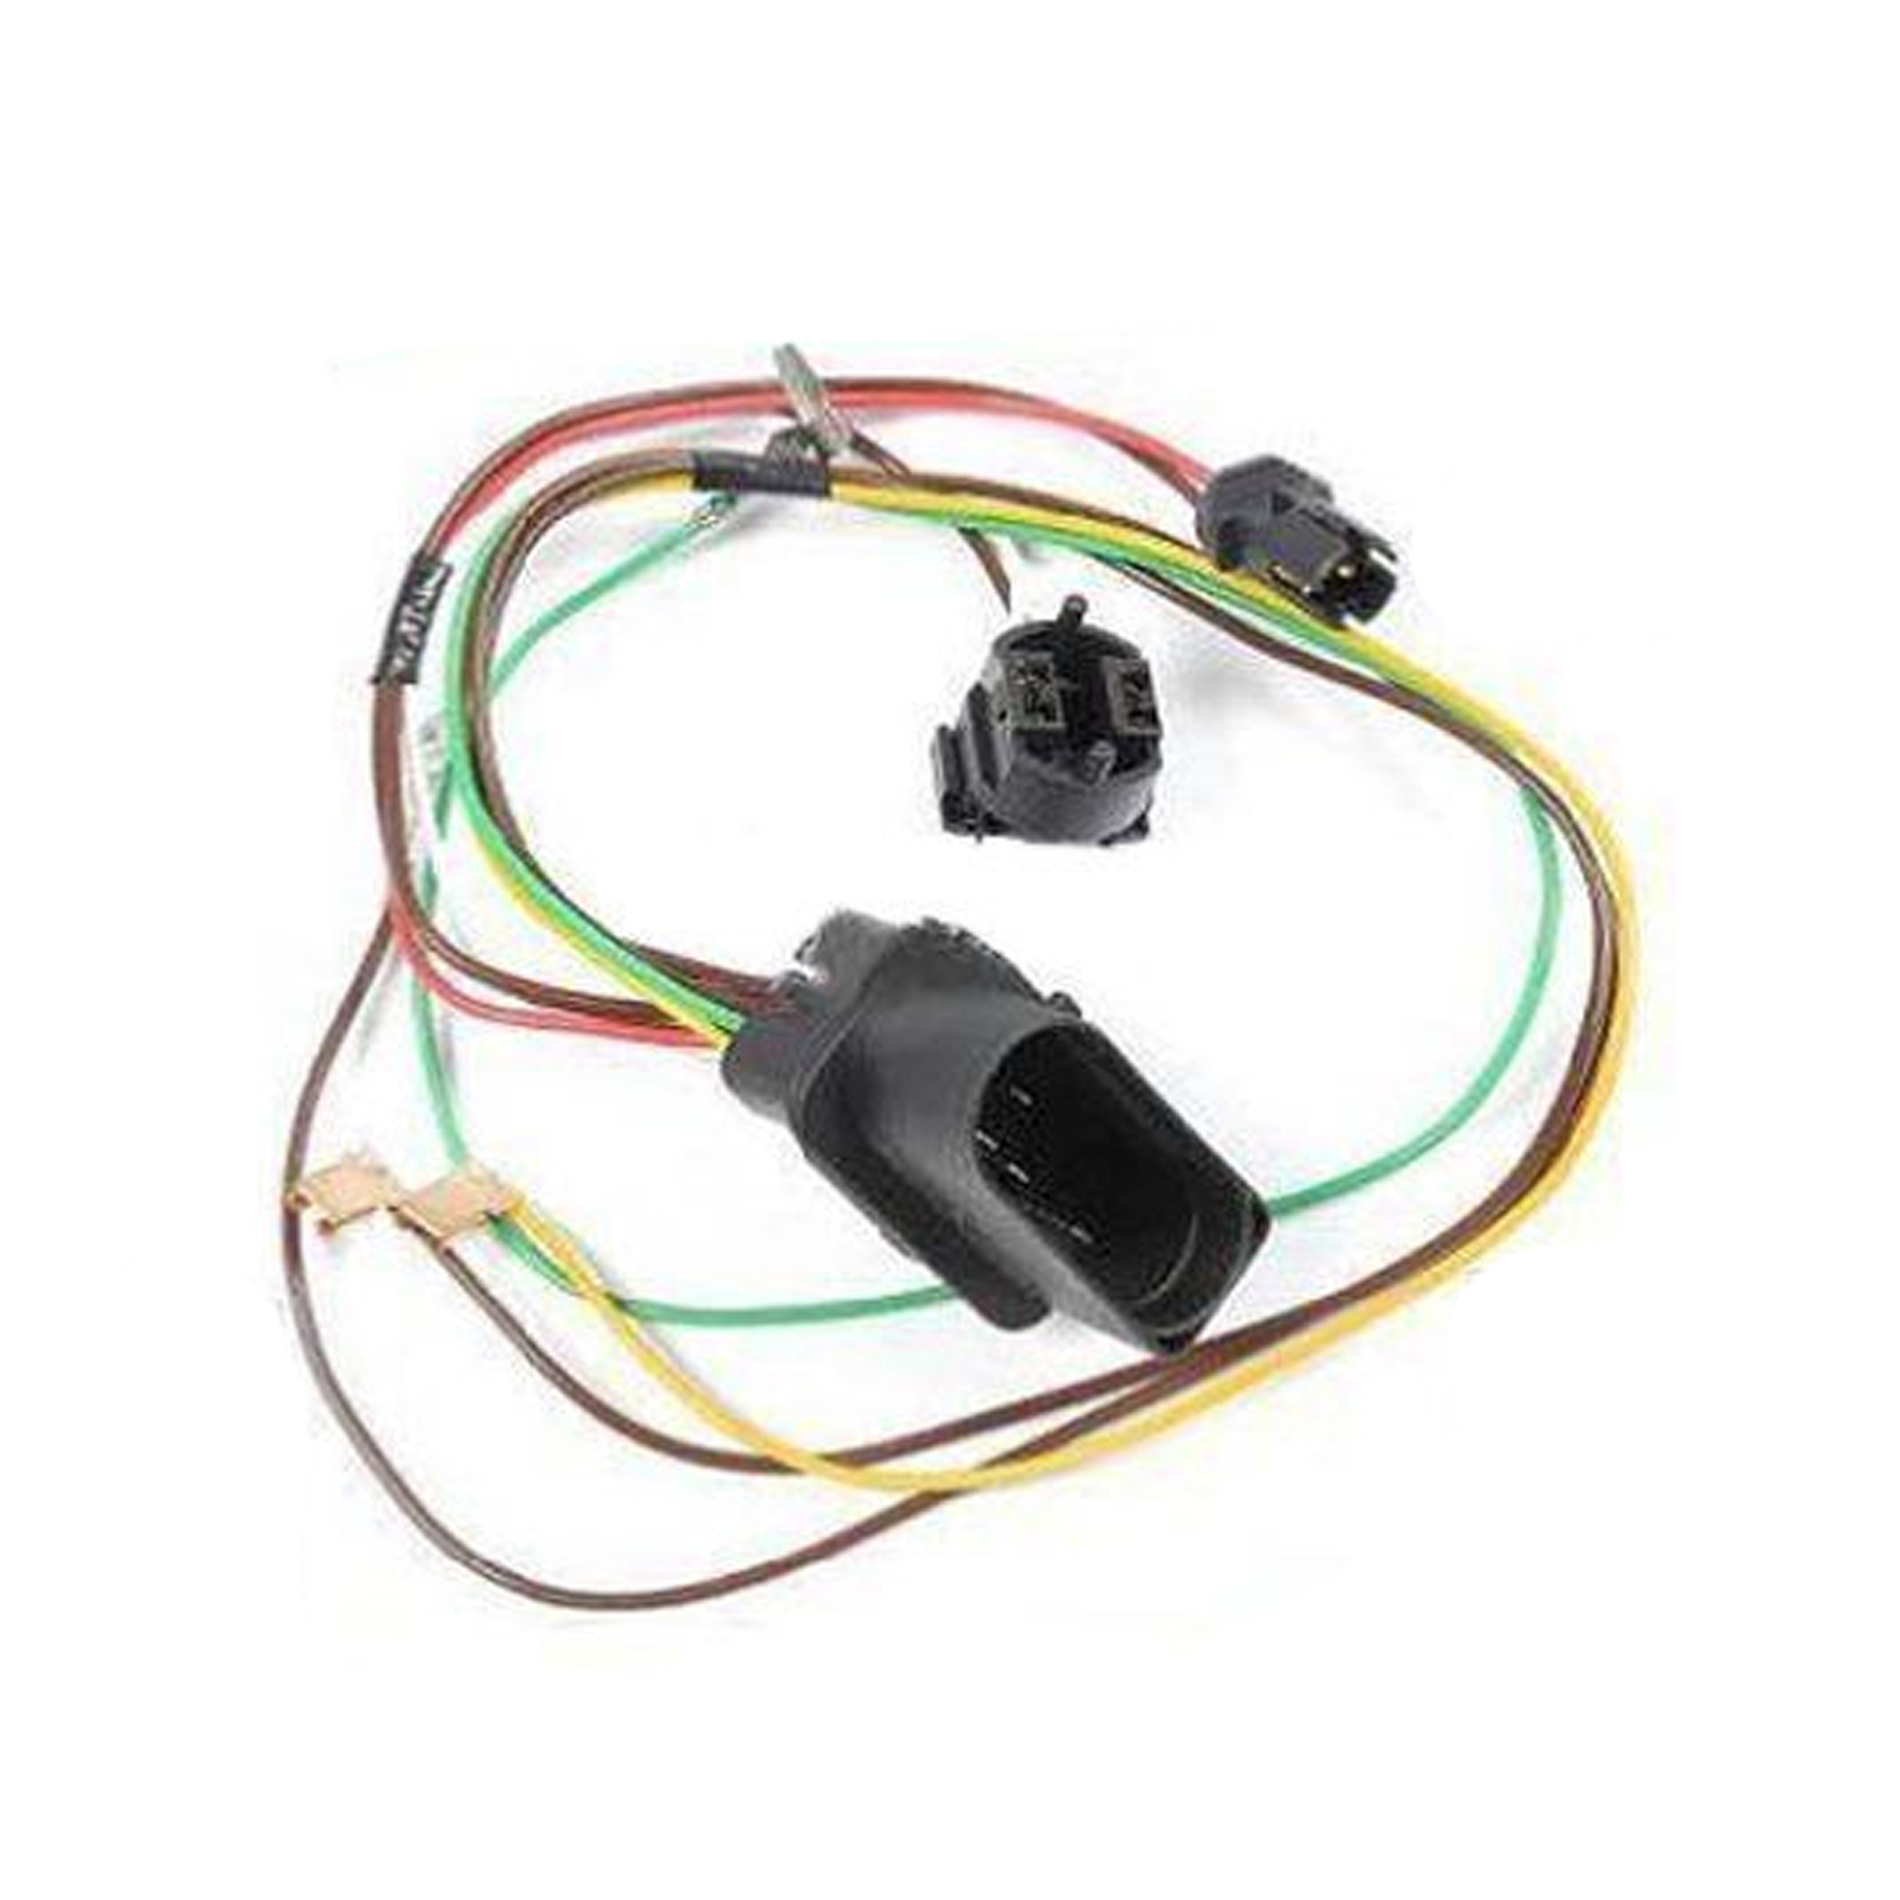 hight resolution of for brand new vw passat 3b0971671 headlight wire harness connector headlight wiring harness 2008 silverado details